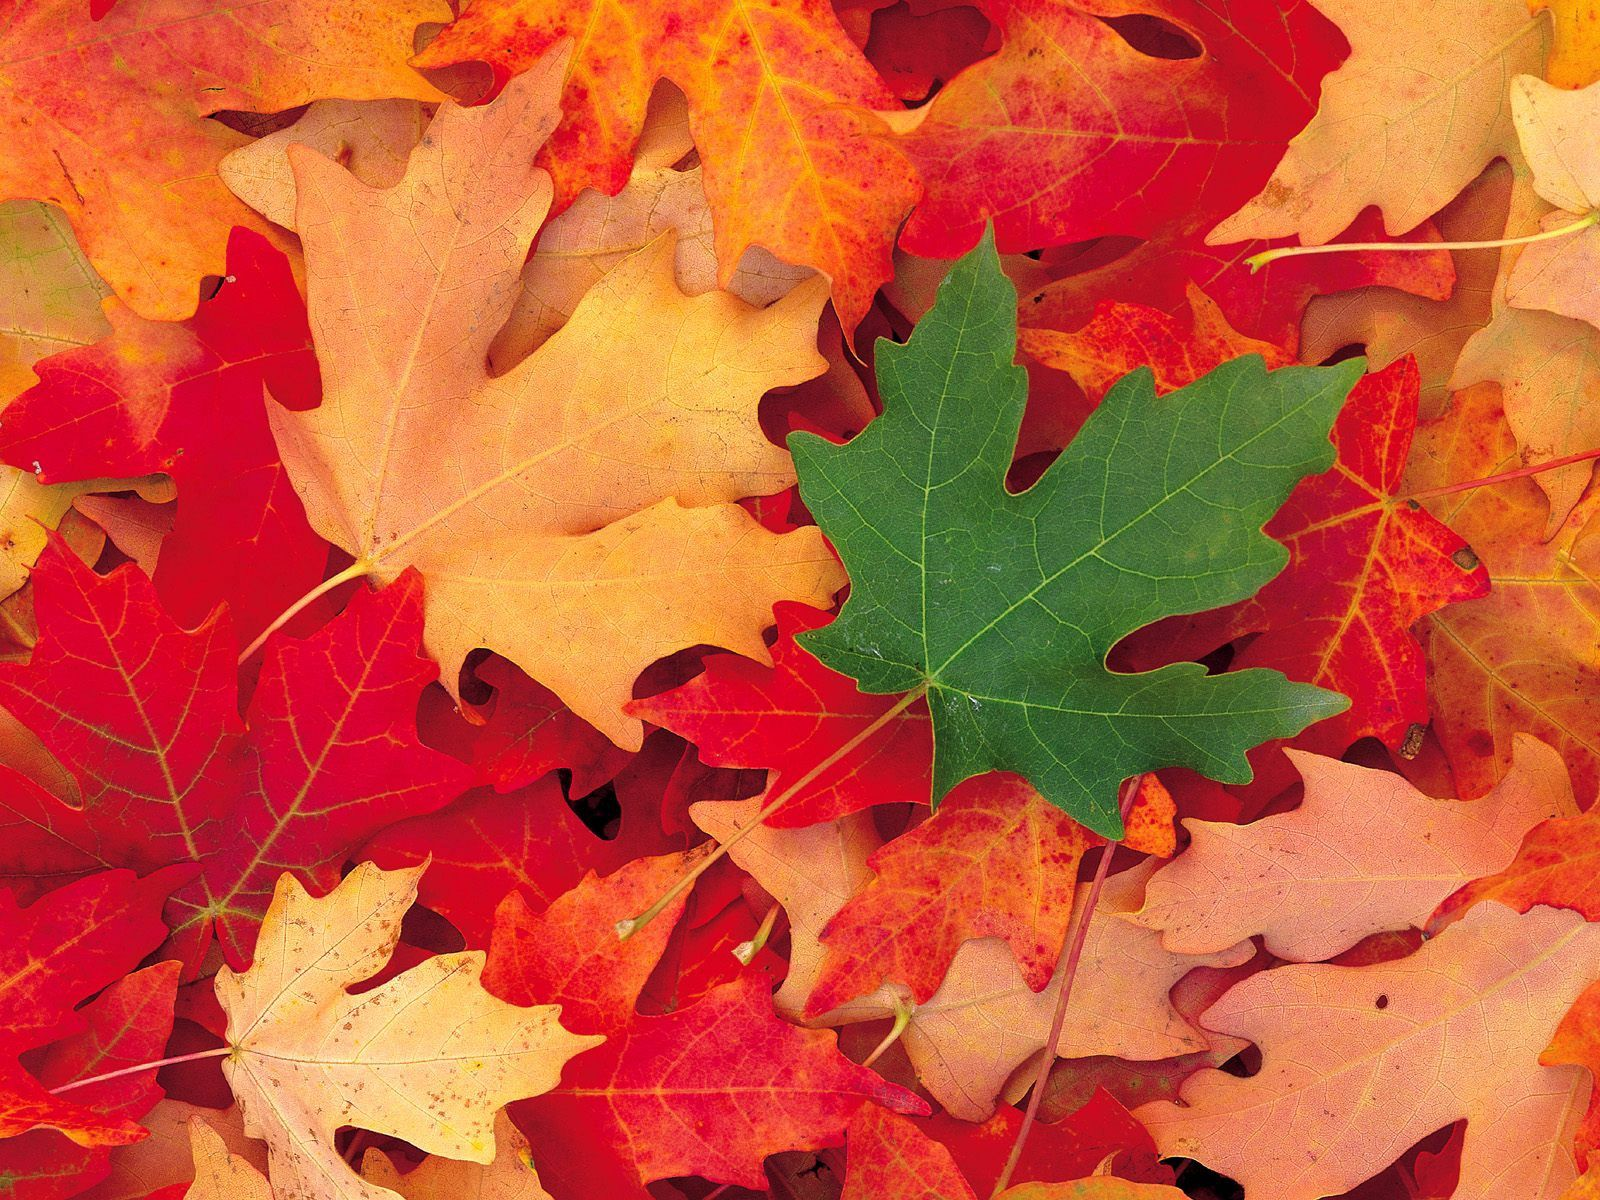 64178 download wallpaper Nature, Leaves, Autumn, Fallen, Maple screensavers and pictures for free